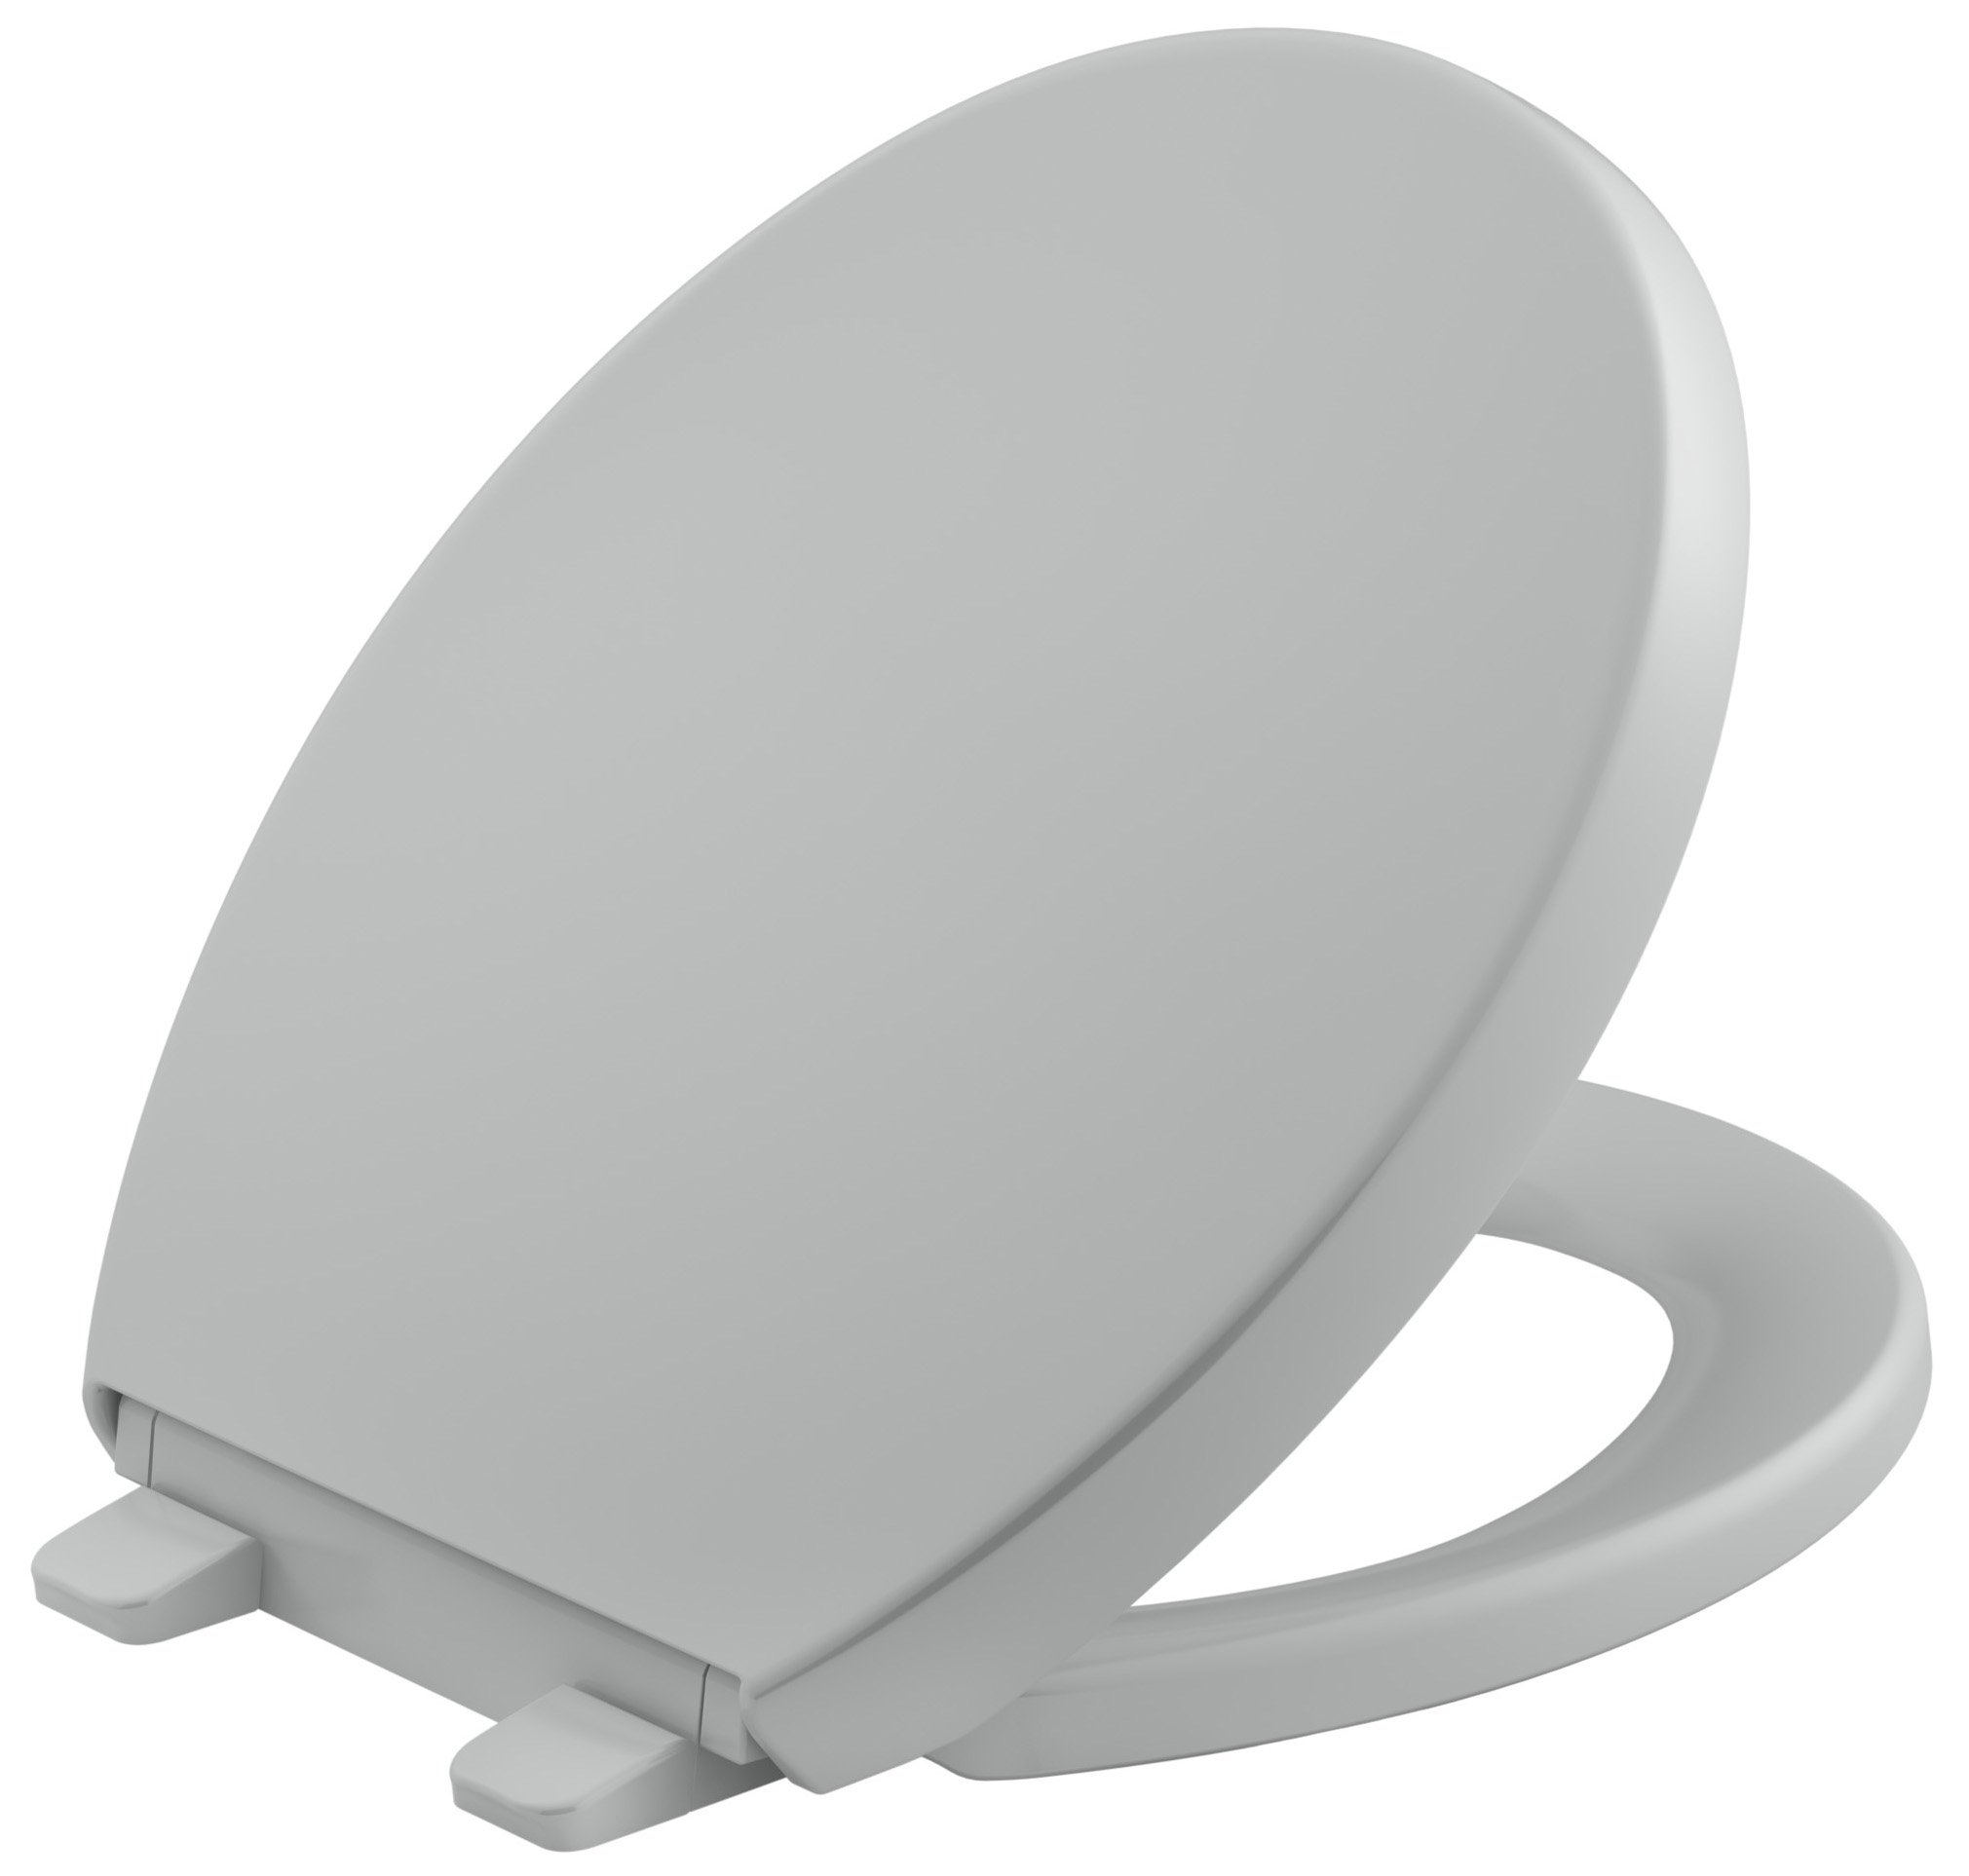 KOHLER K-4009-95 Reveal Quiet-Close with Grip-Tight Bumpers Round-front Toilet Seat, Ice Grey